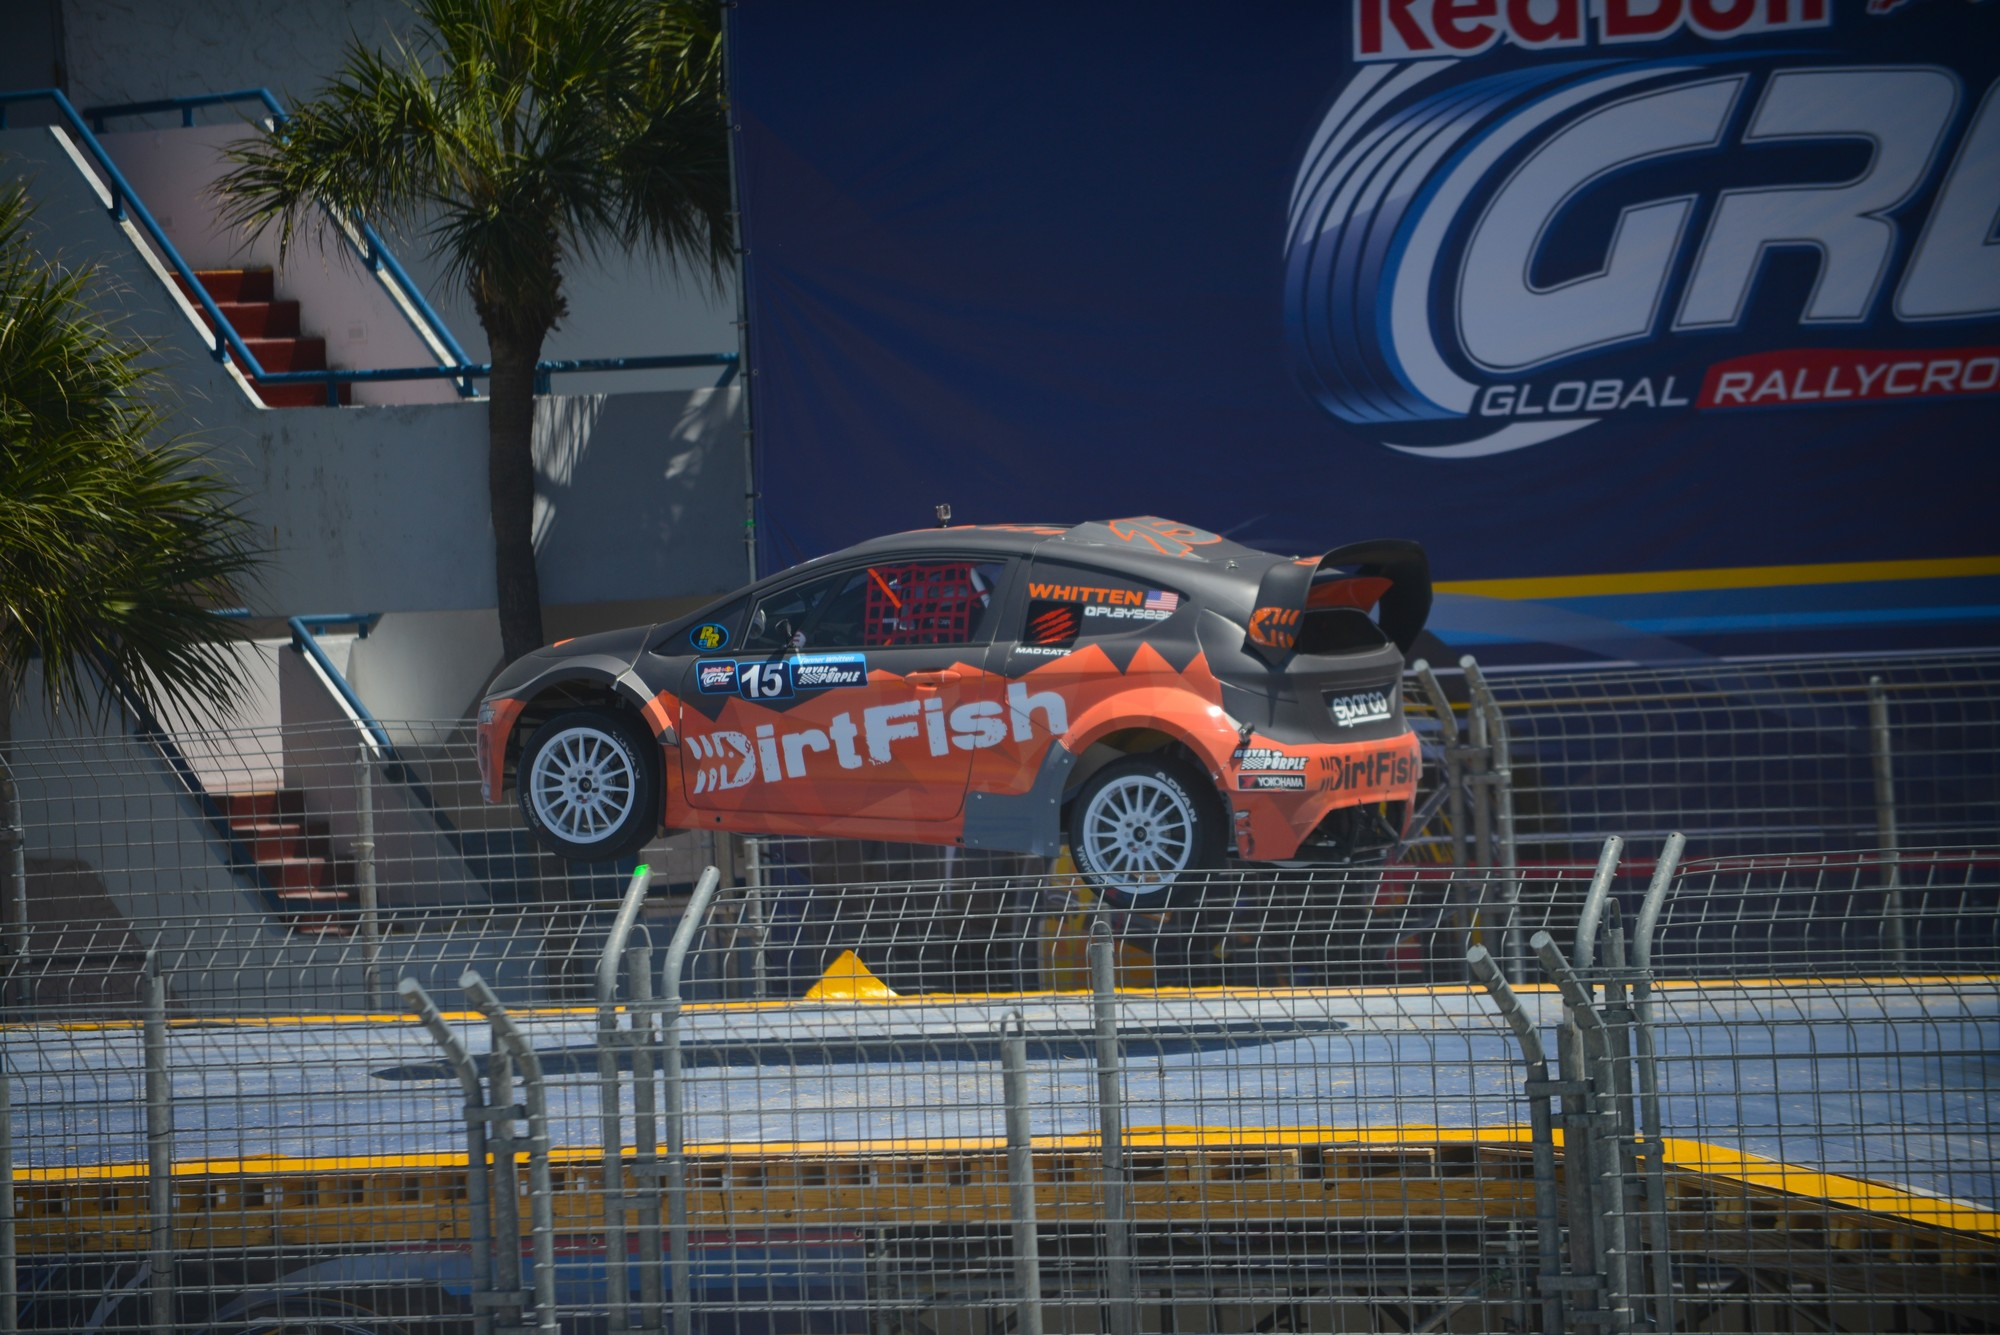 DirtFish taking a jump